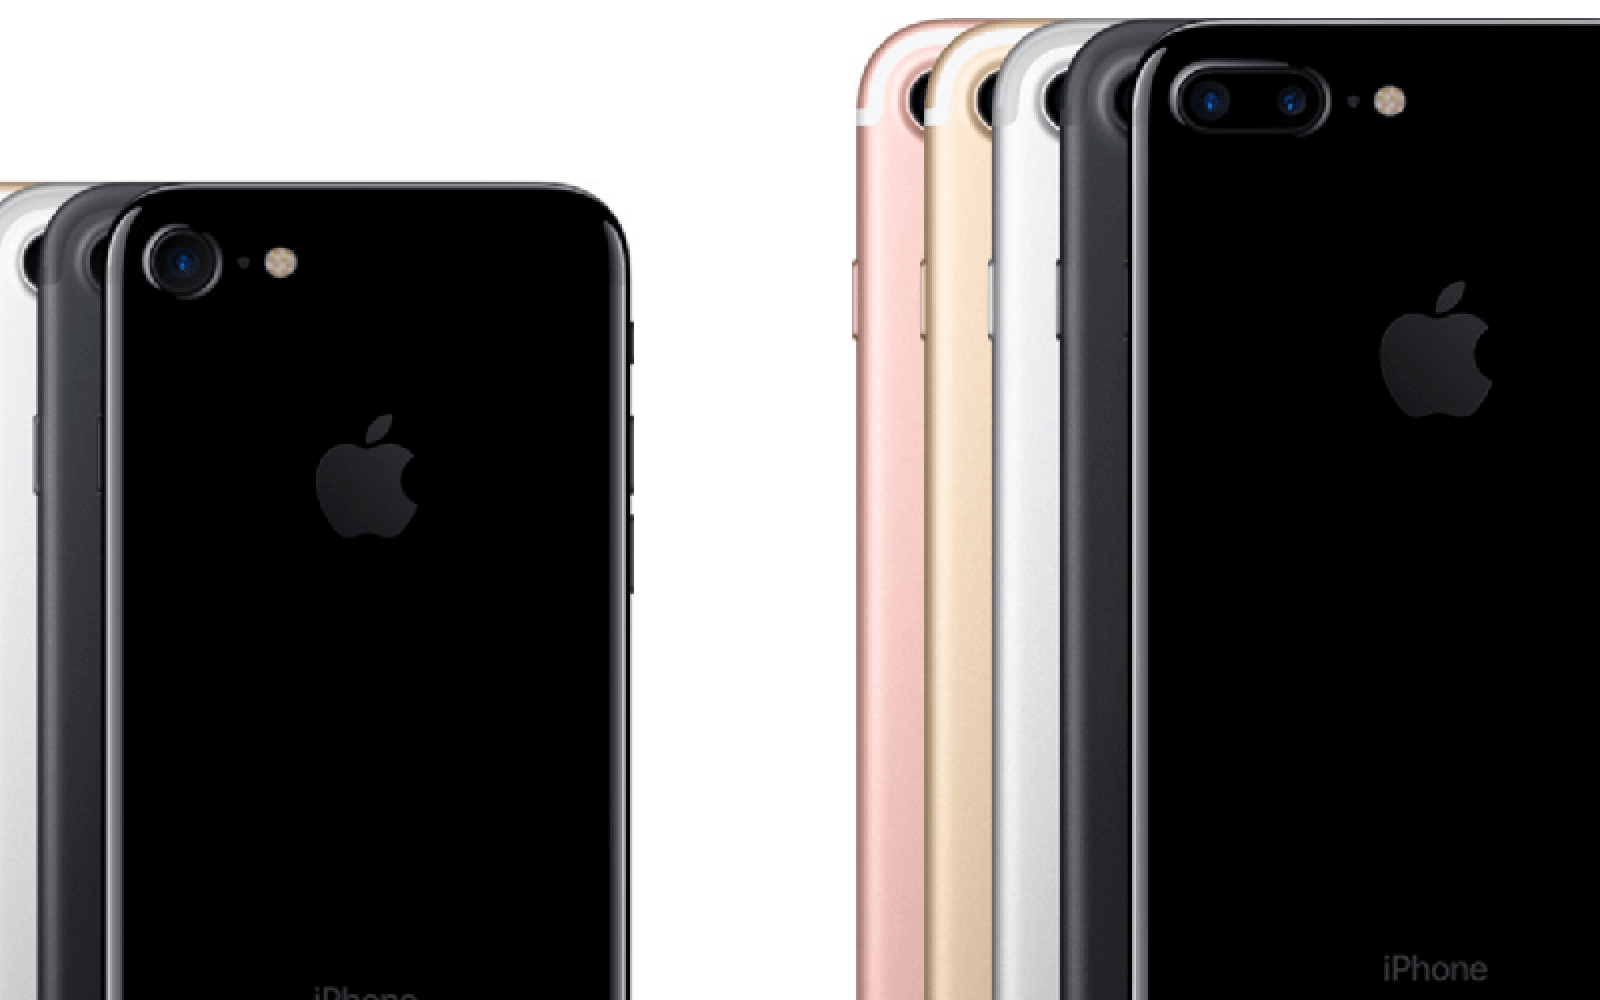 iPhone 7 review roundup: the verdicts are in, and they are mixed